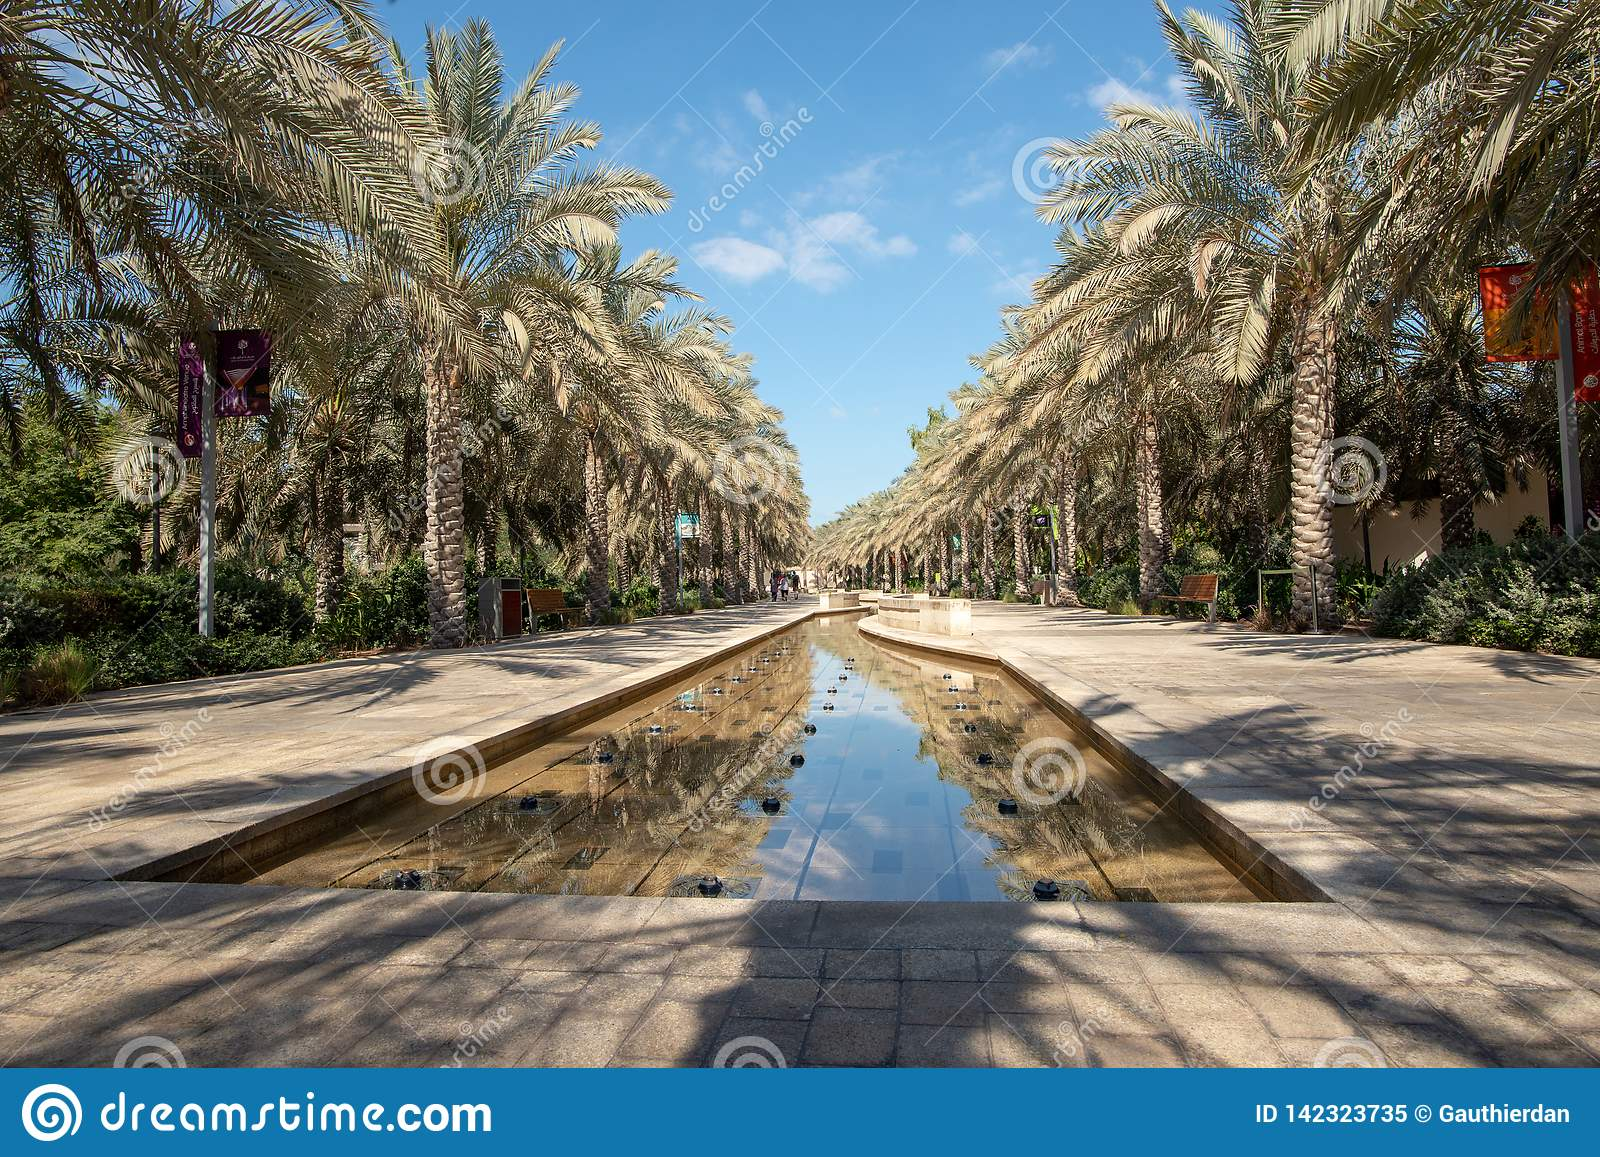 Main park alley and water feature, Abu Dhabi